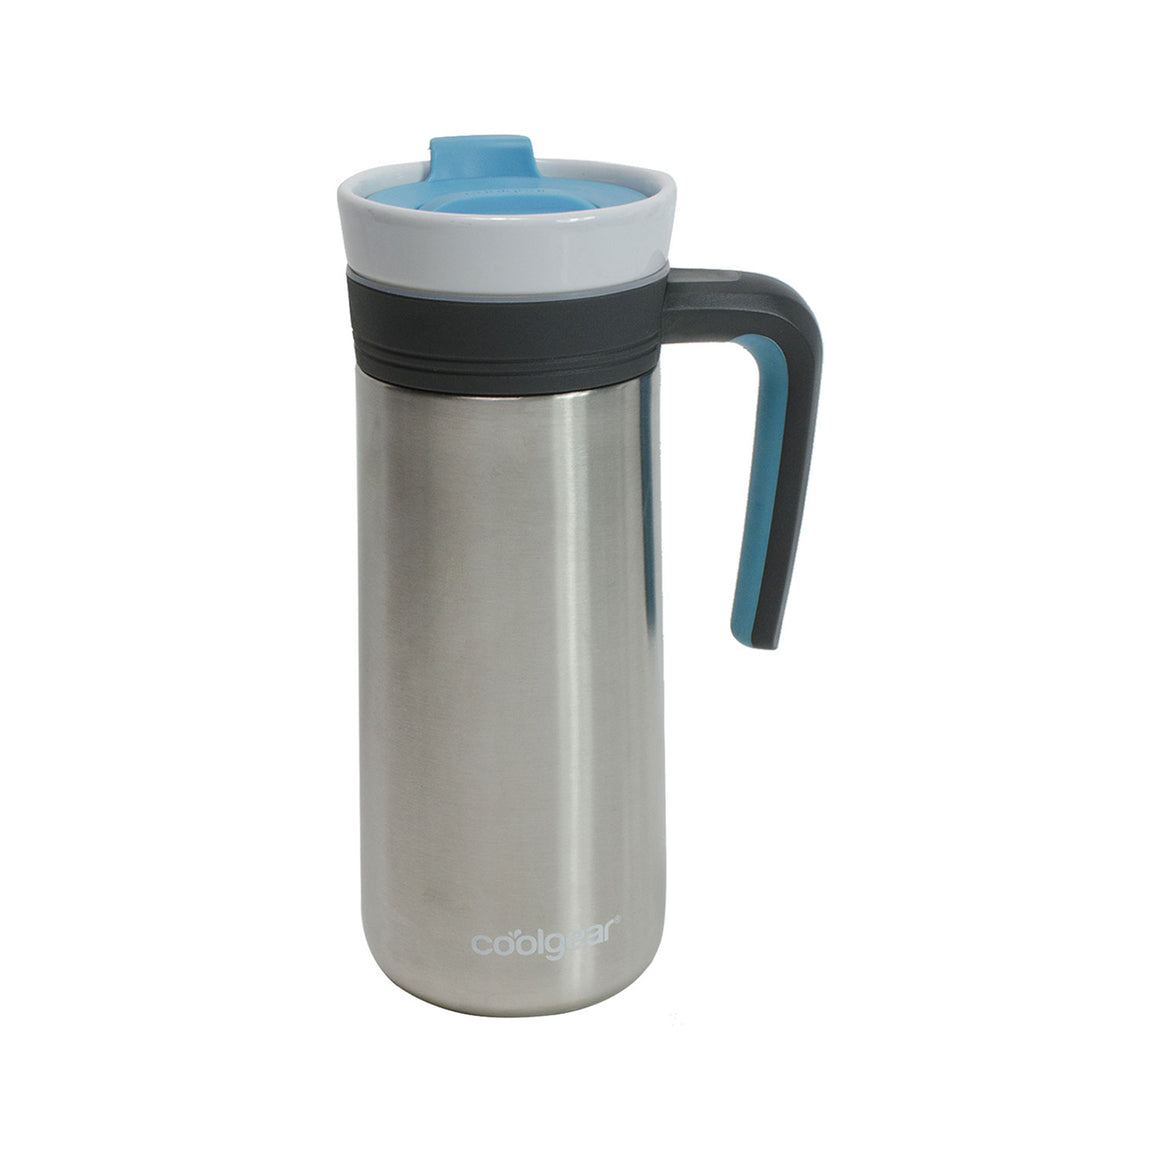 Aquamarine Kona Handle 12 Oz Travel Mug at Cool Gear Coffee Tea,Travel Mugs,Stainless Steel